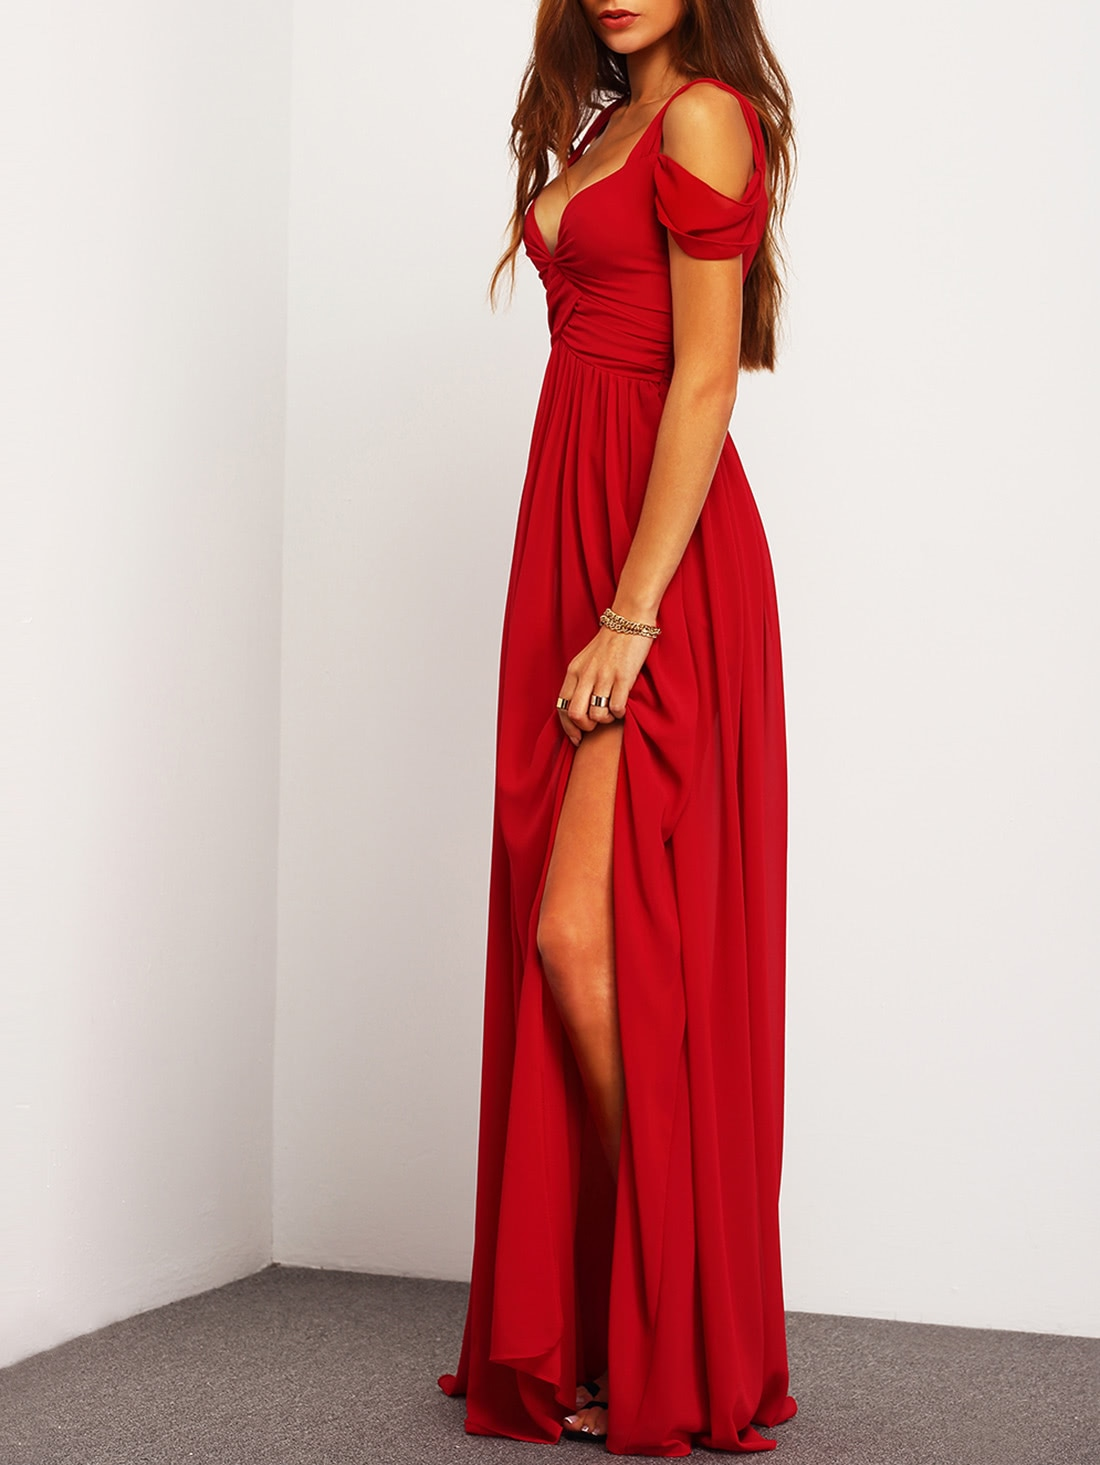 Off the shoulder red maxi dress